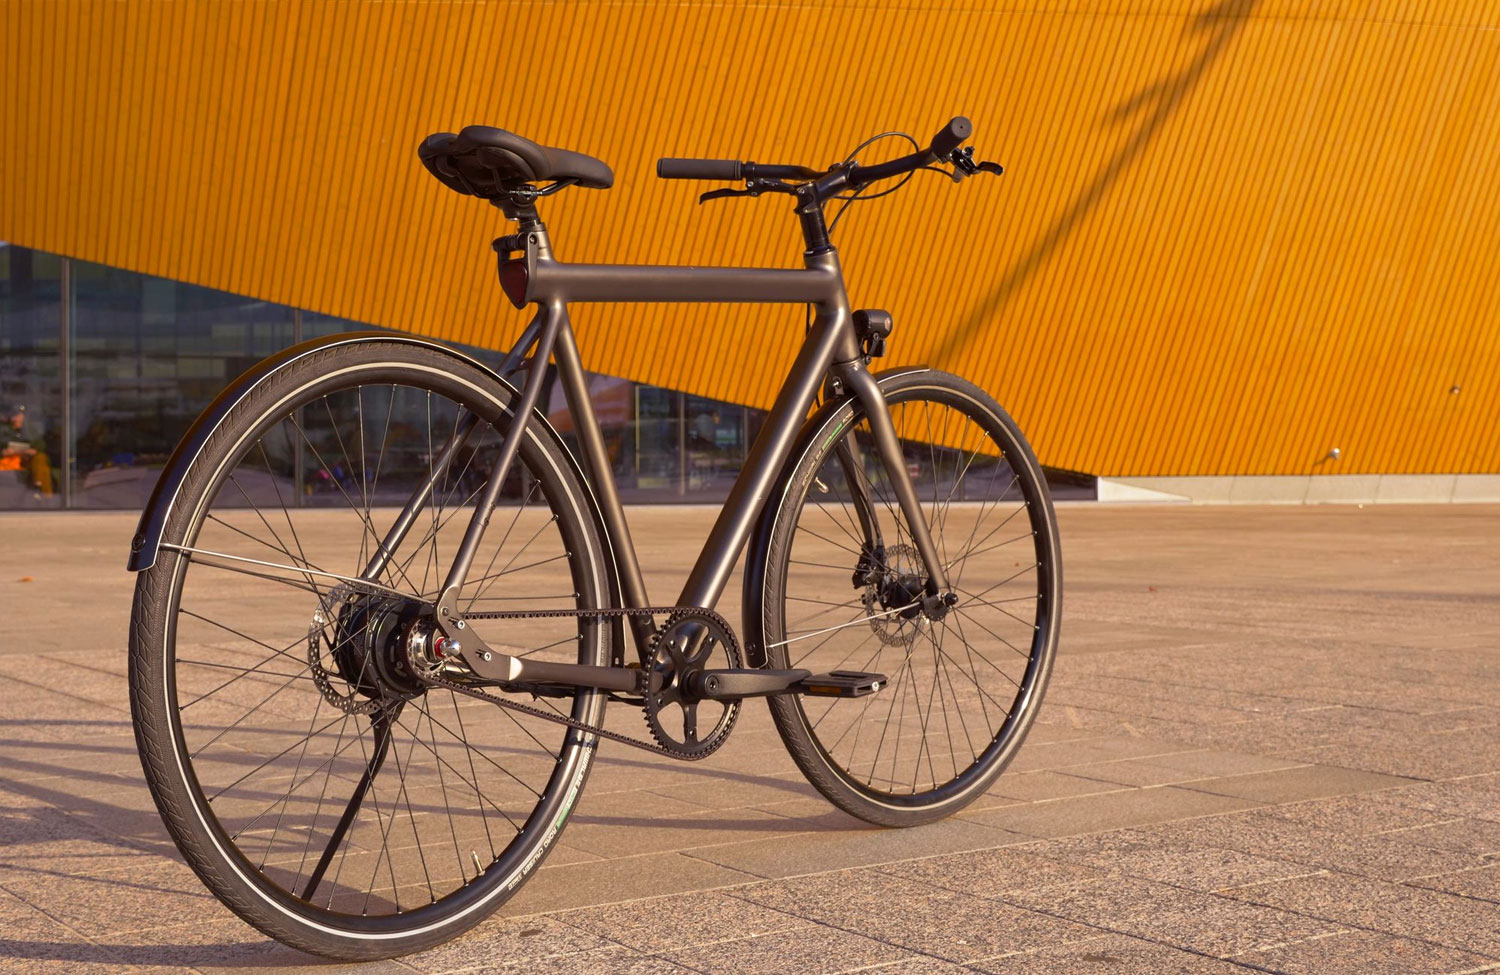 Equal Bike from Finland: Affordable e-bike with removable battery